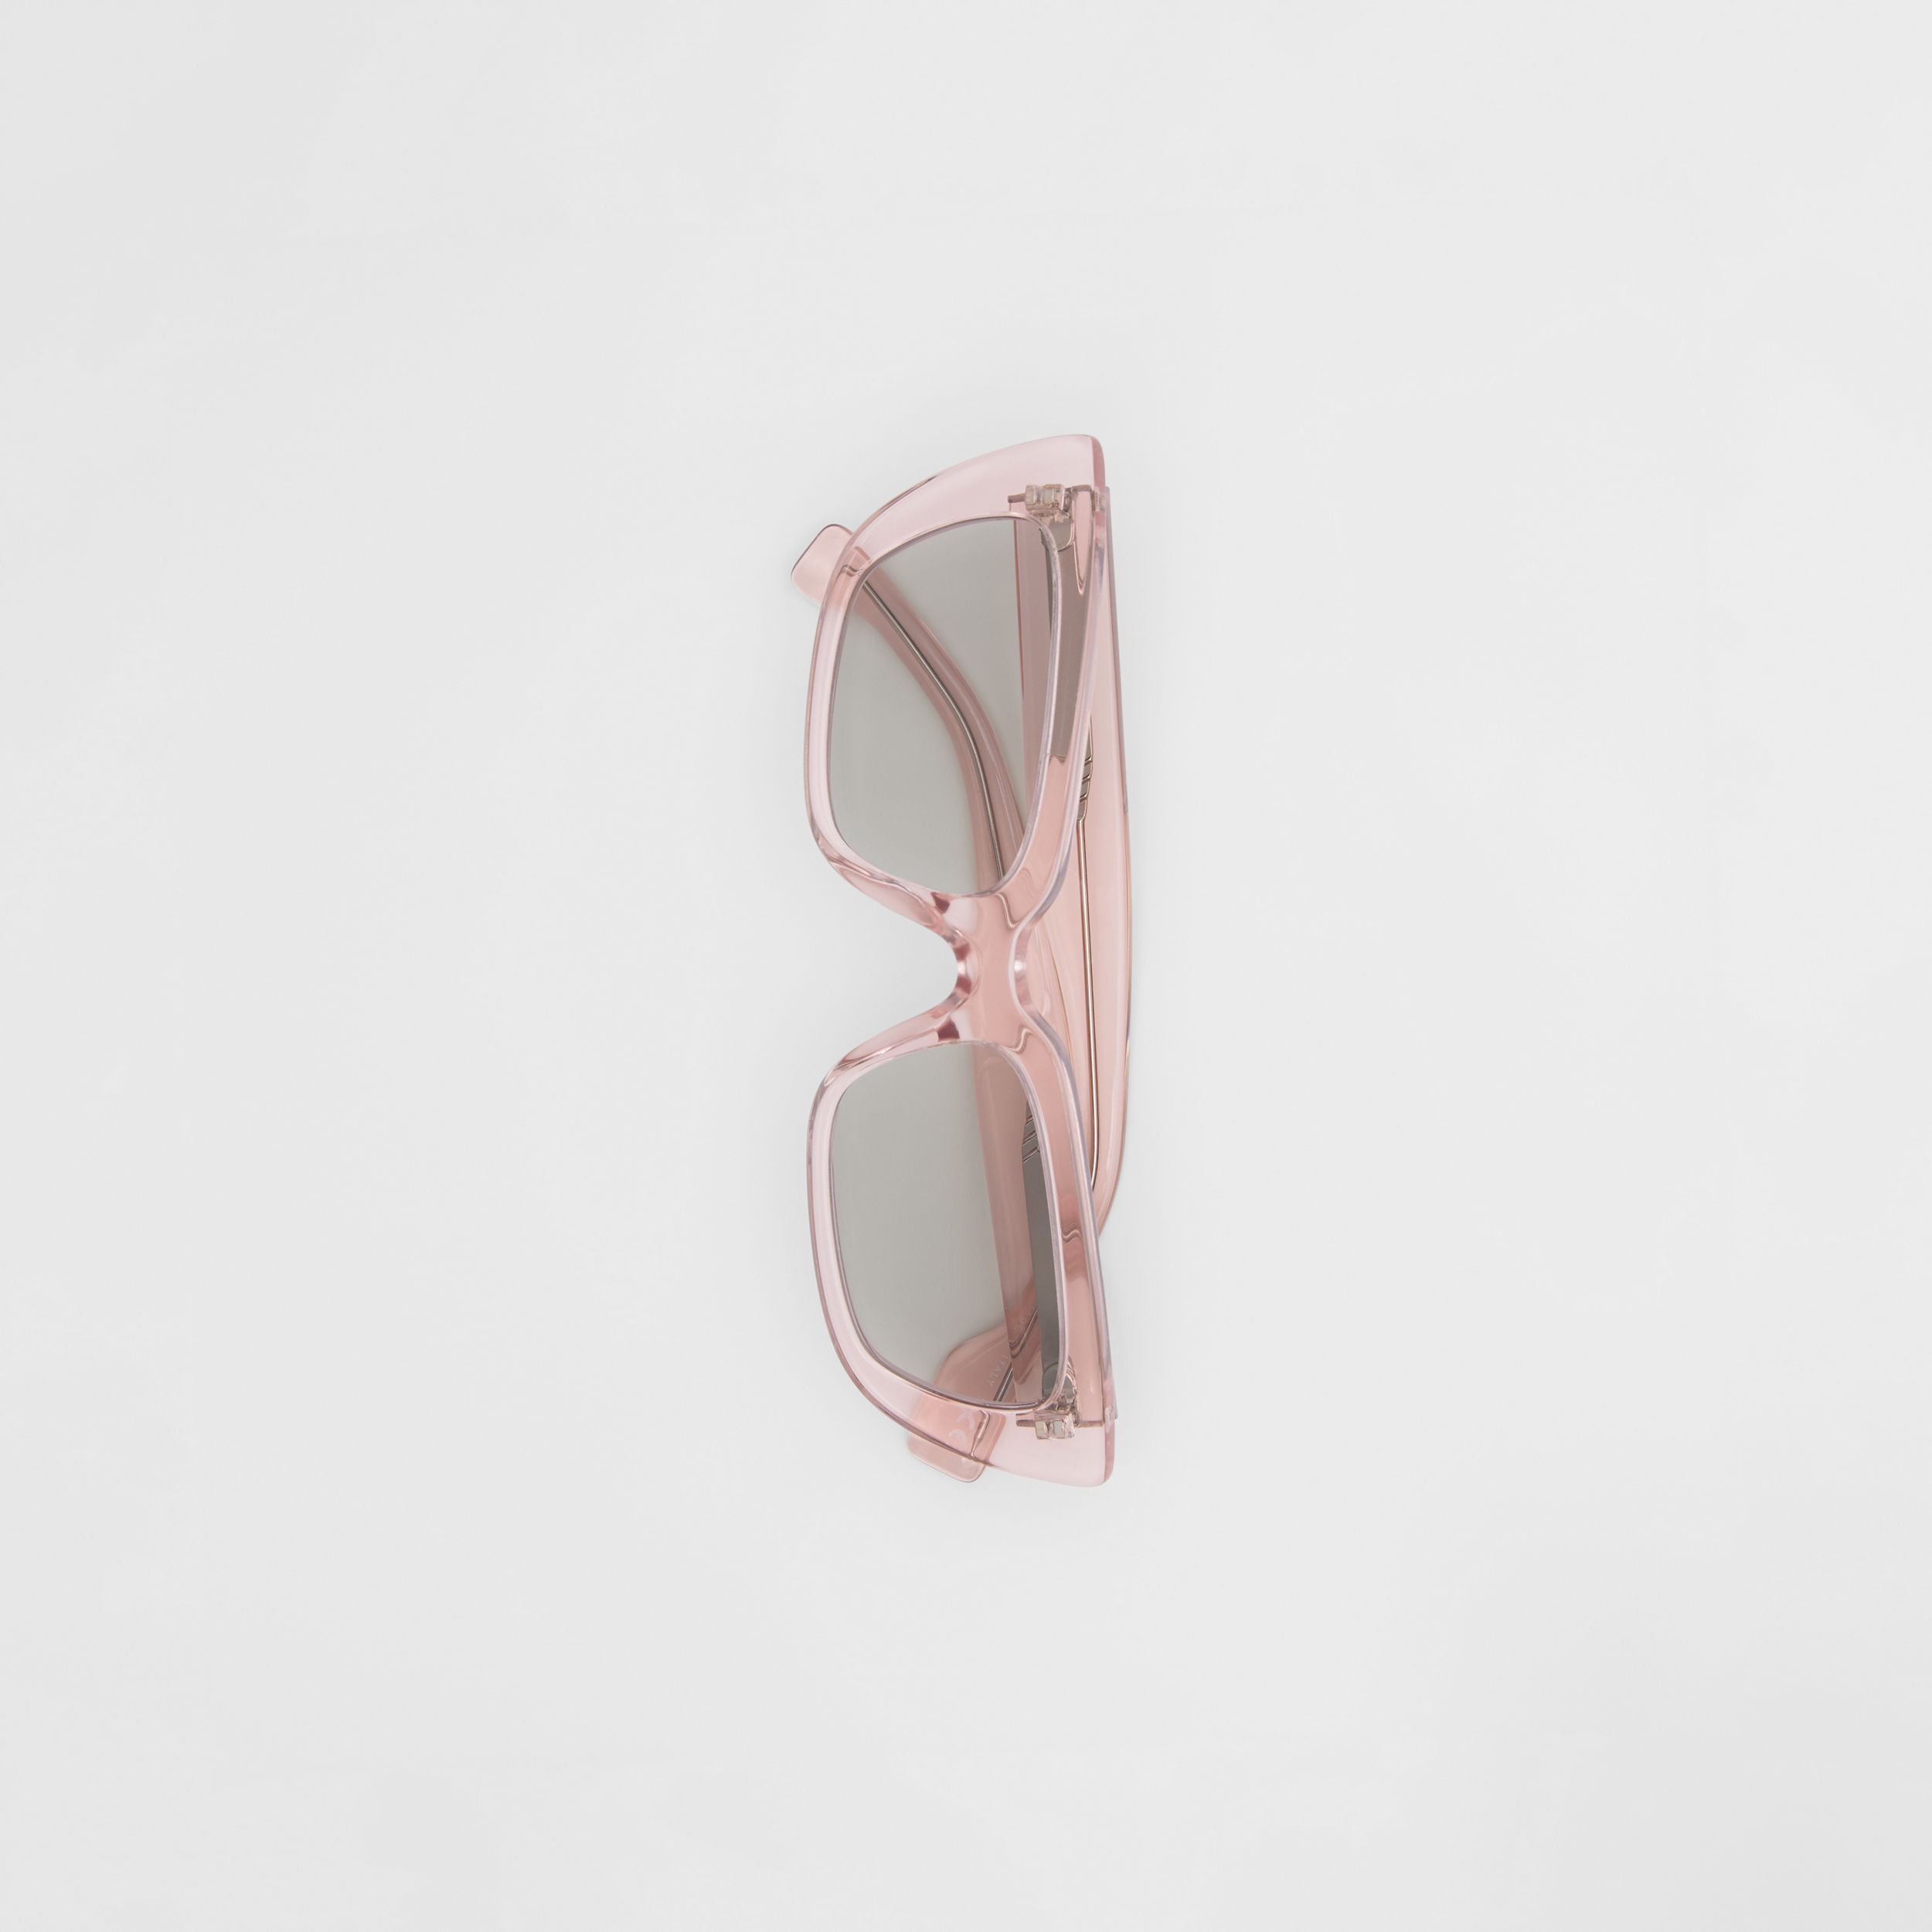 Bio-acetate Rectangular Frame Sunglasses in Light Pink - Women | Burberry - 4